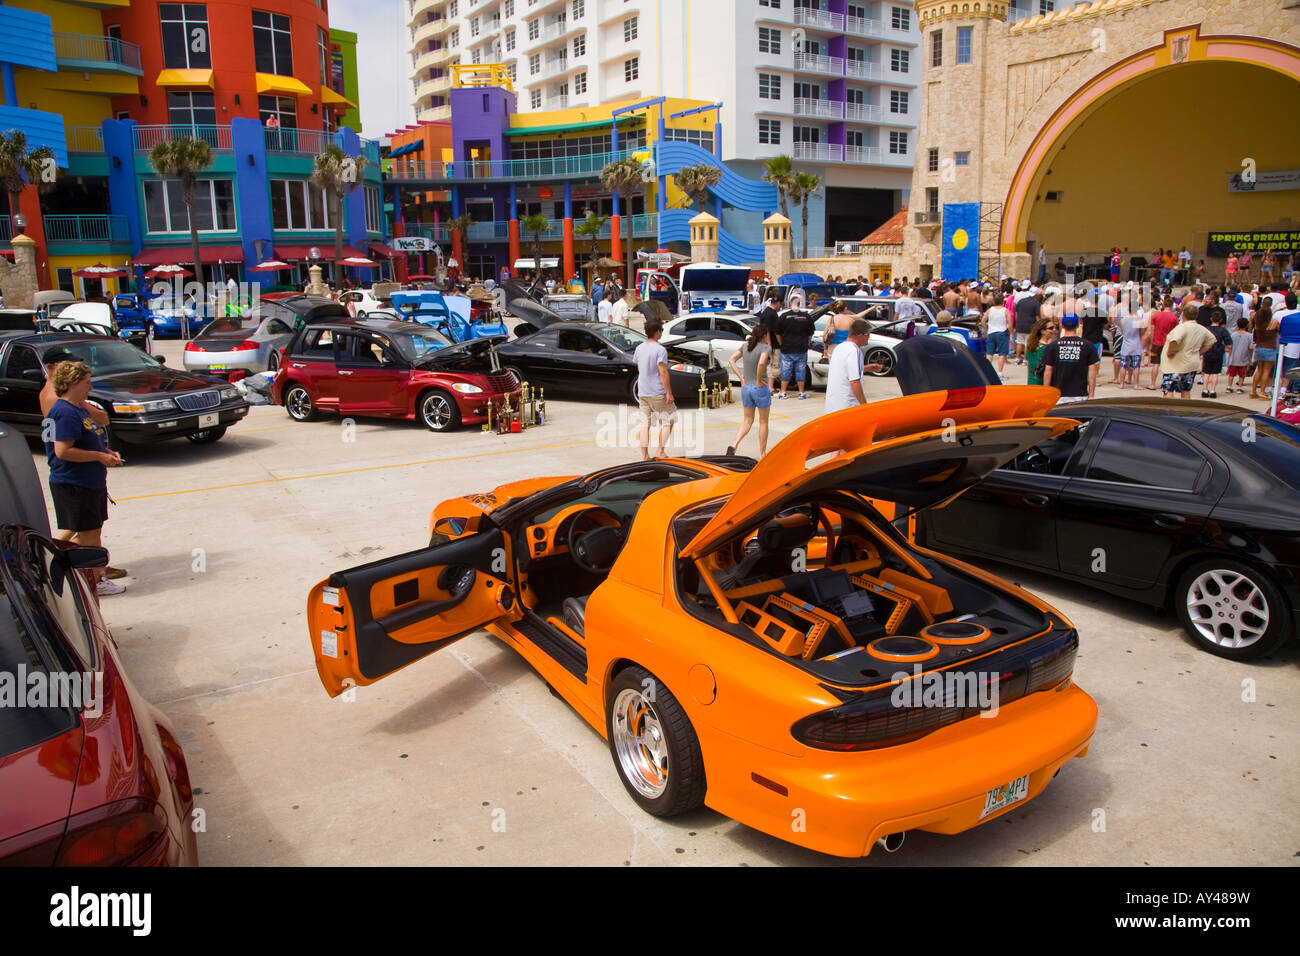 Enthusiasts At American Car Show Car Show In Daytona Beach